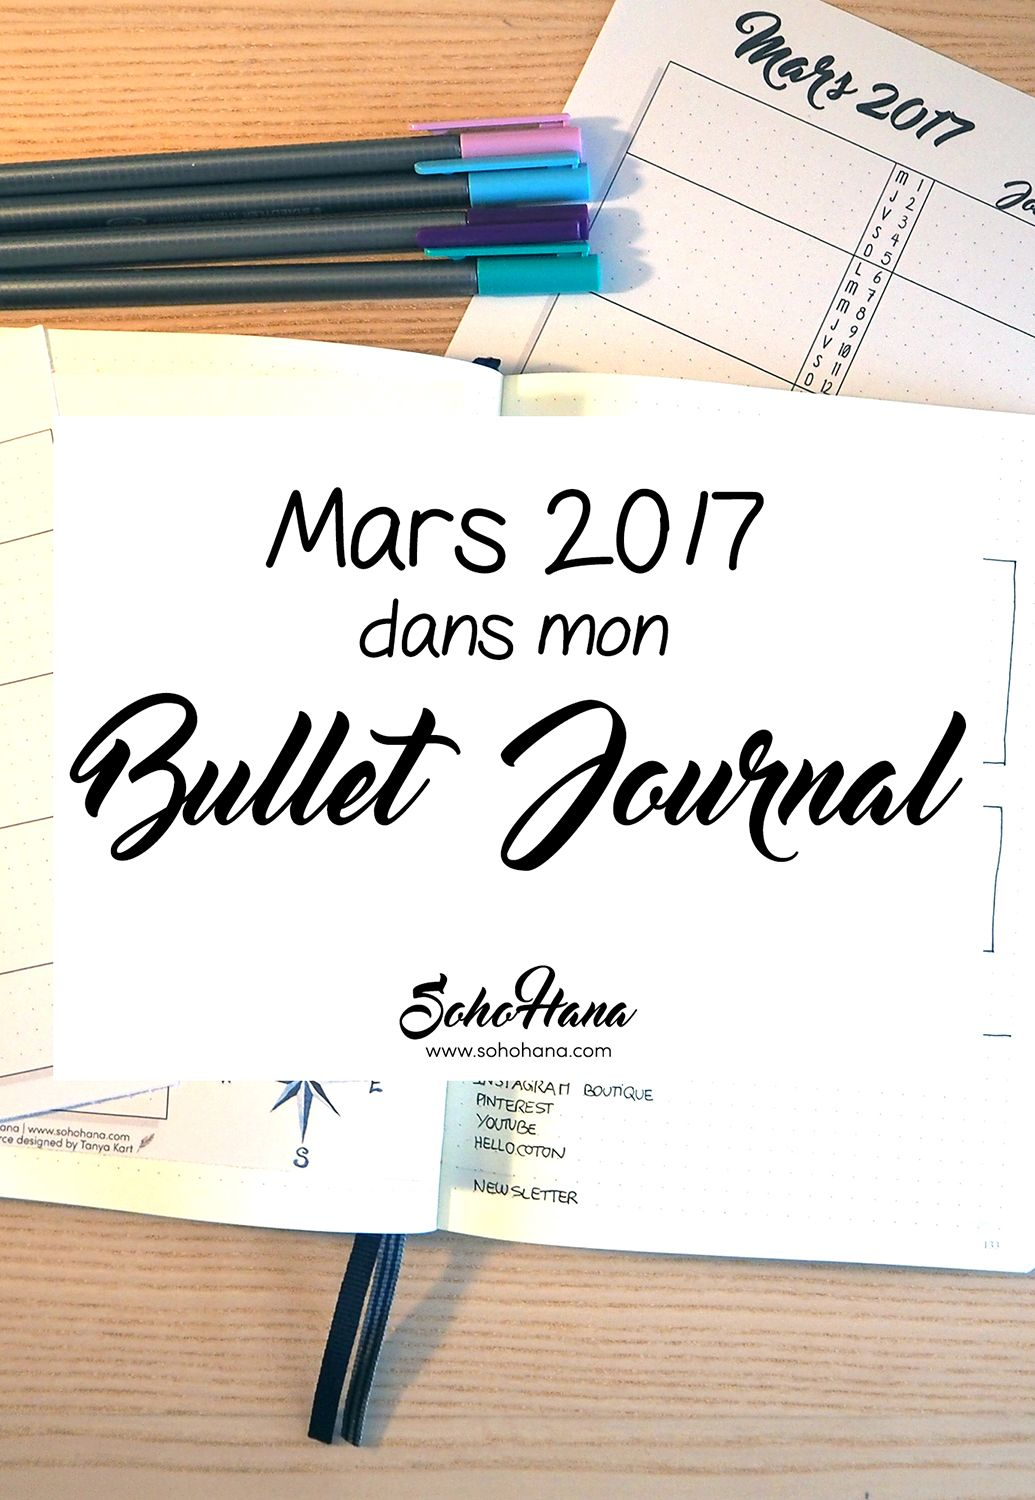 mars 2017 dans mon bullet journal bullet journal communaut fr bullet journal 2017 bullet. Black Bedroom Furniture Sets. Home Design Ideas